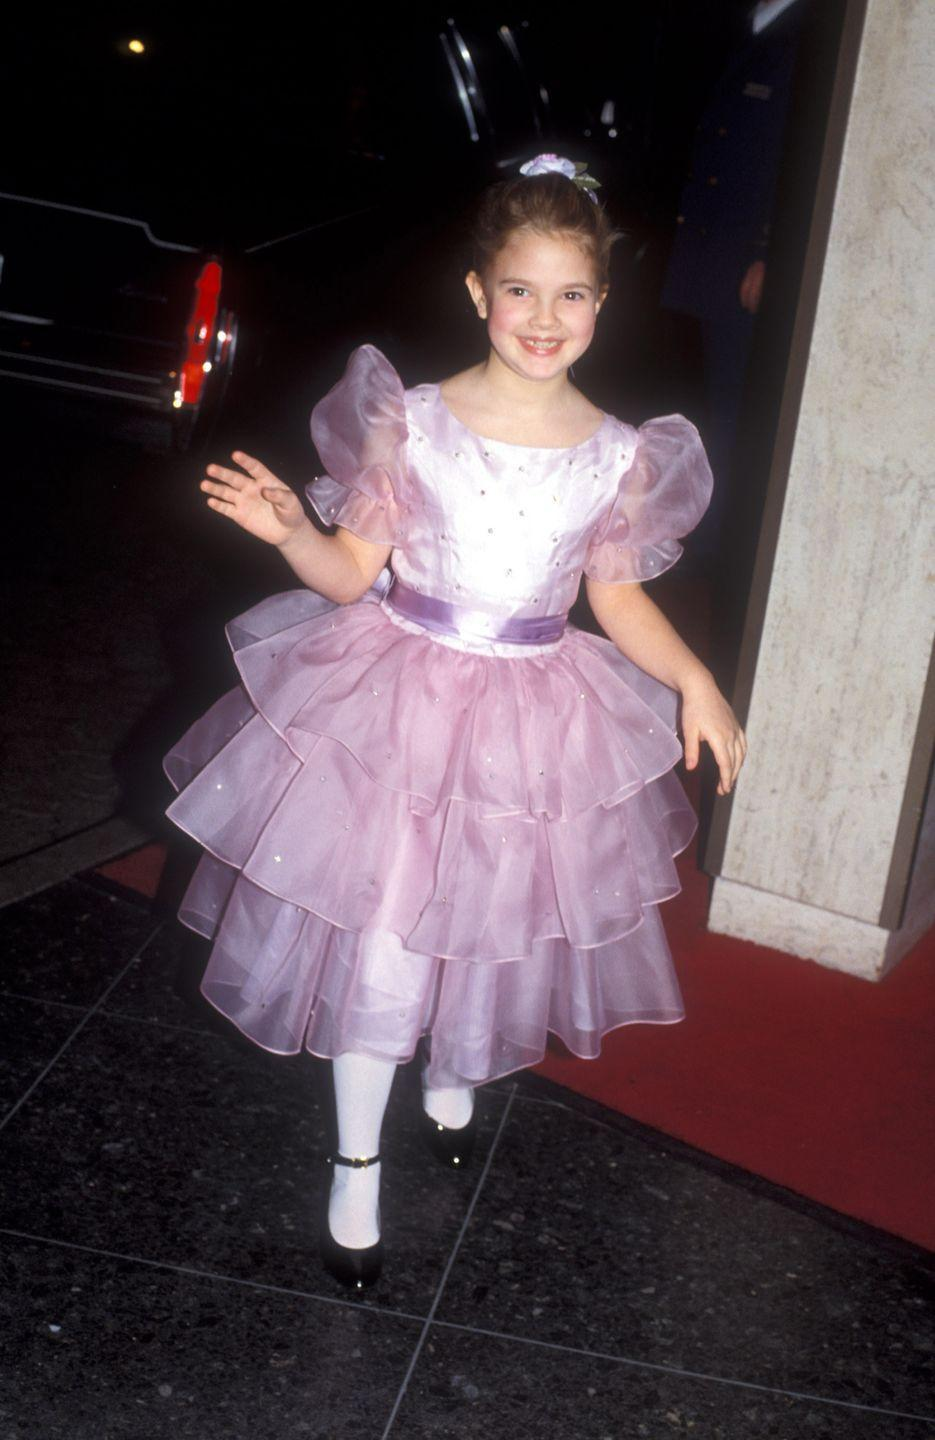 <p>Drew Barrymore circa 1983 couldn't have been any cuter in this pink dress. </p>